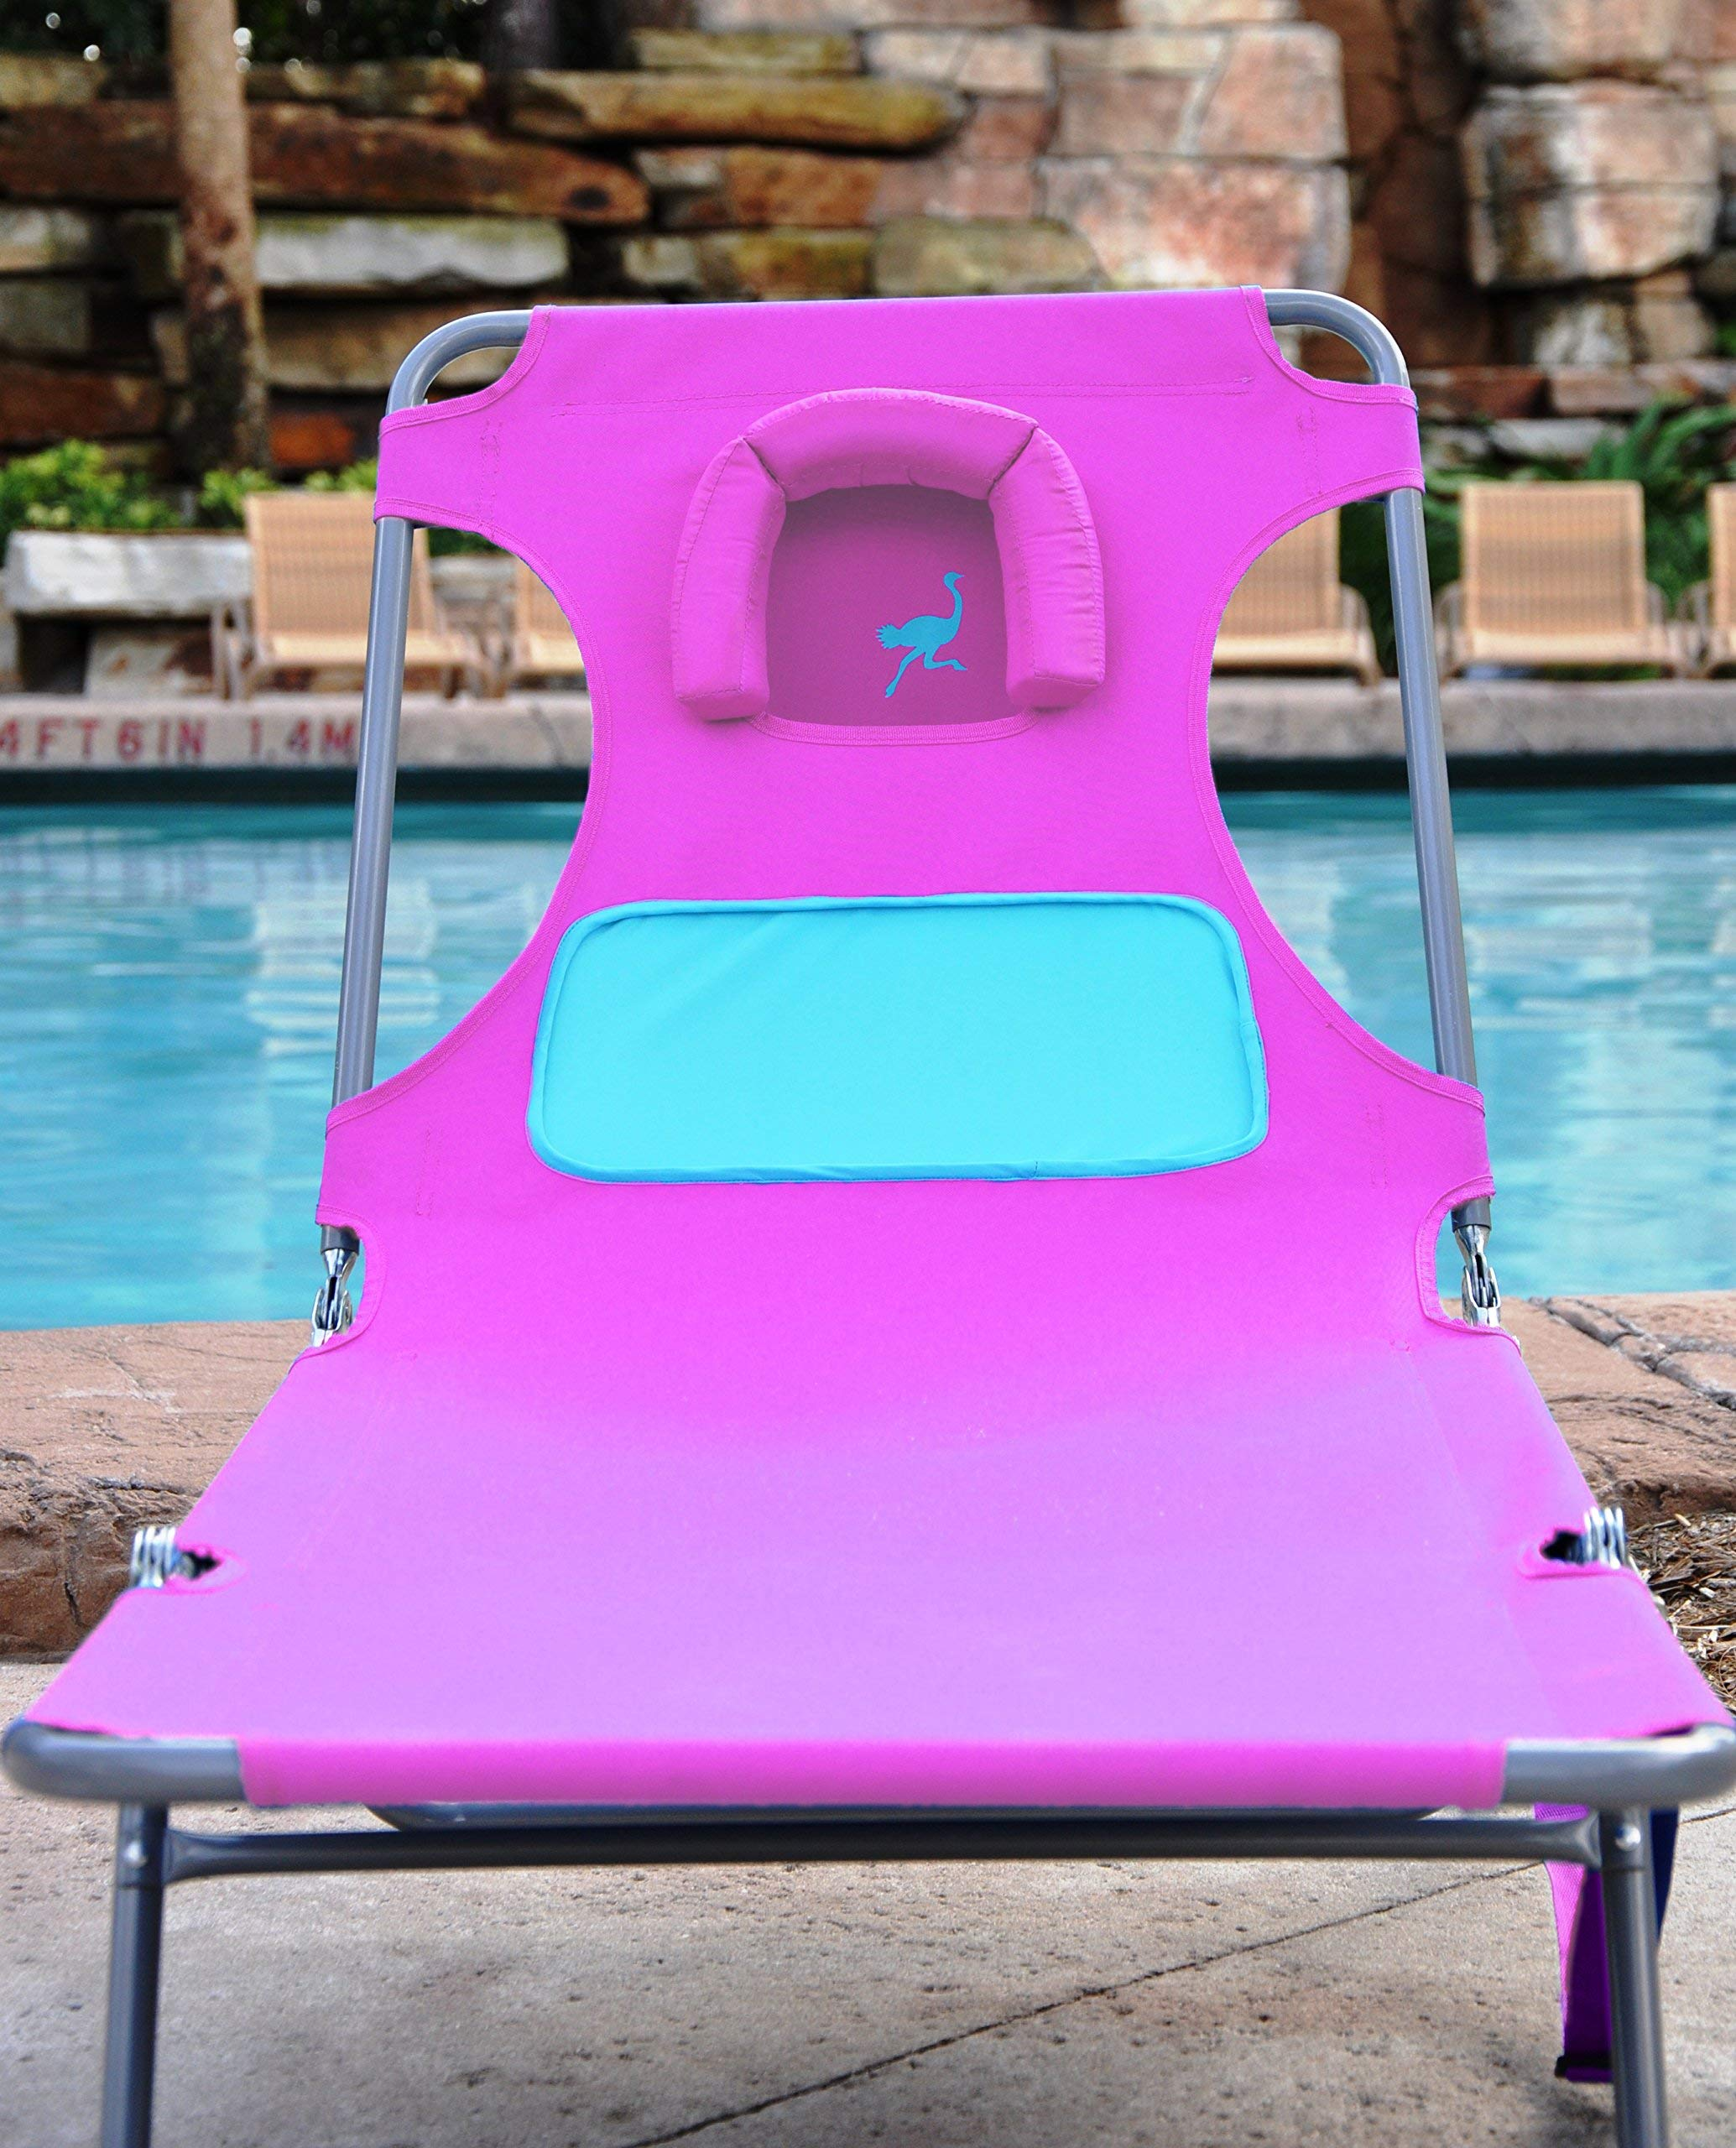 Ostrich Ladies Comfort Lounger, Pink by Ostrich (Image #2)